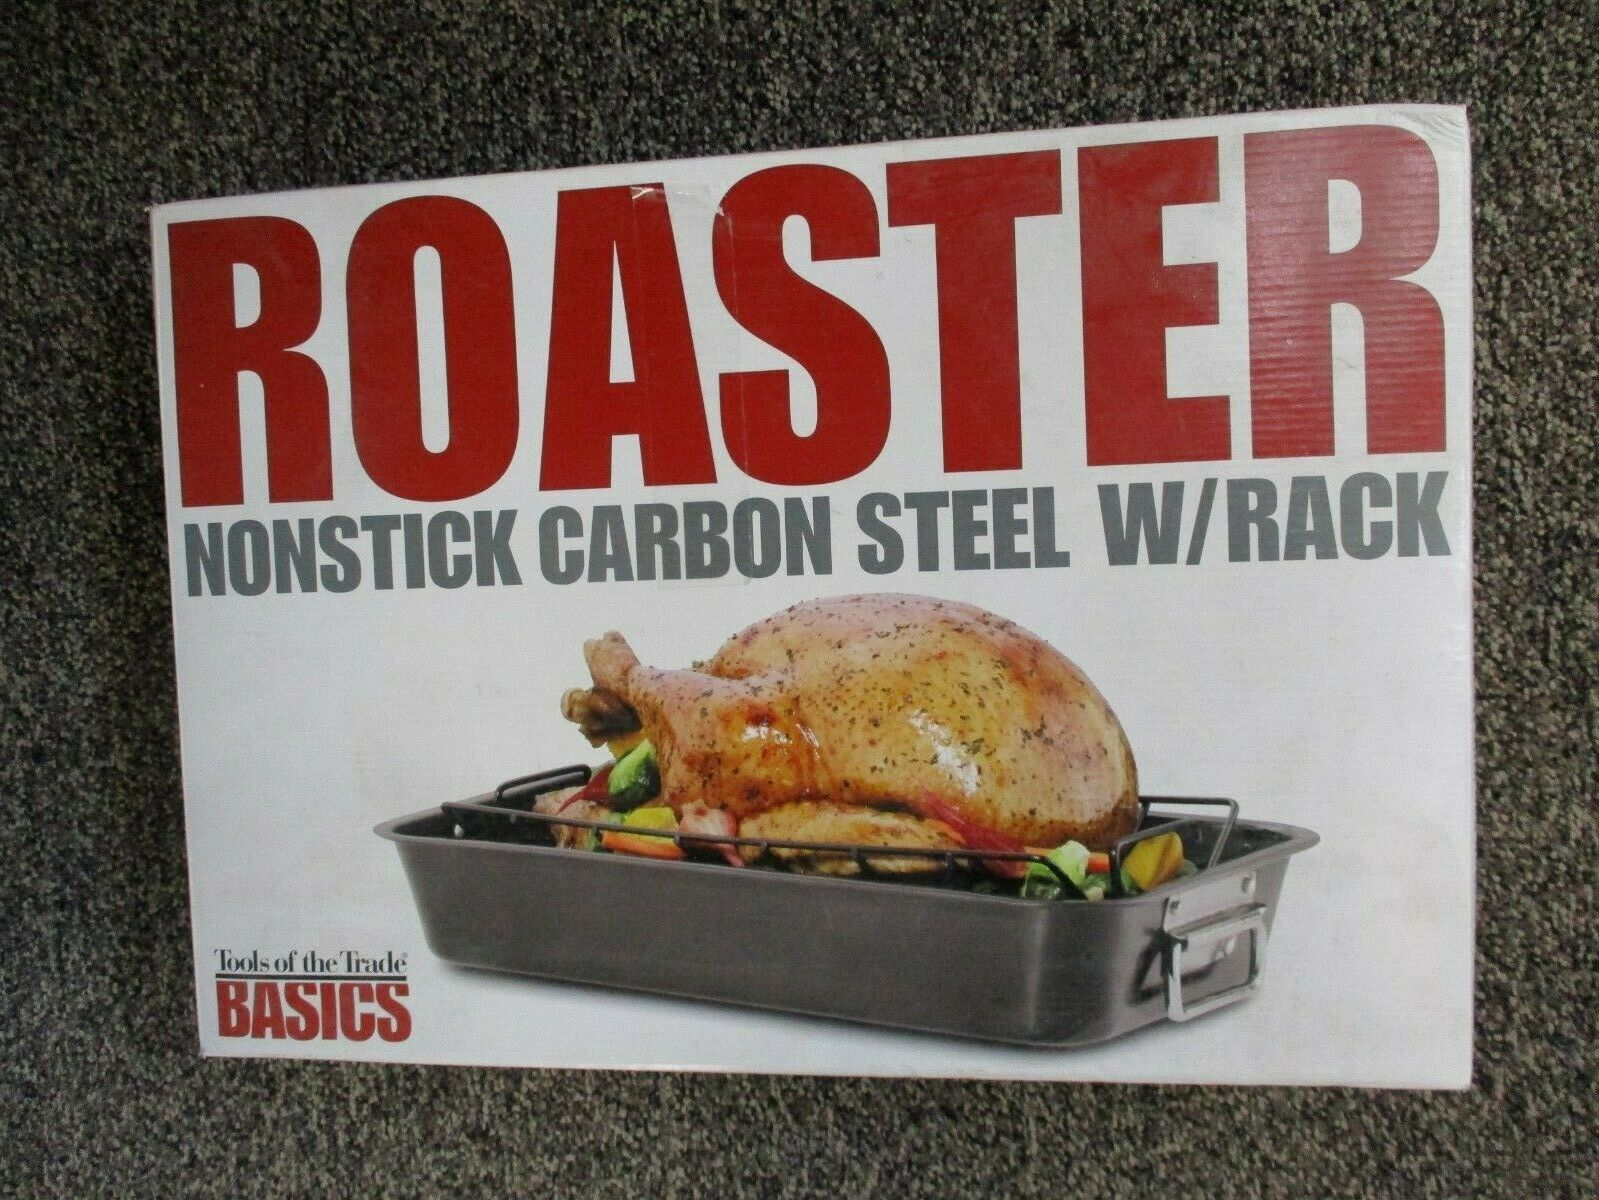 Non-Stick Carbon Steel Roaster With Rack Tools Of The Trade Basics 18.5 X 13 X 3